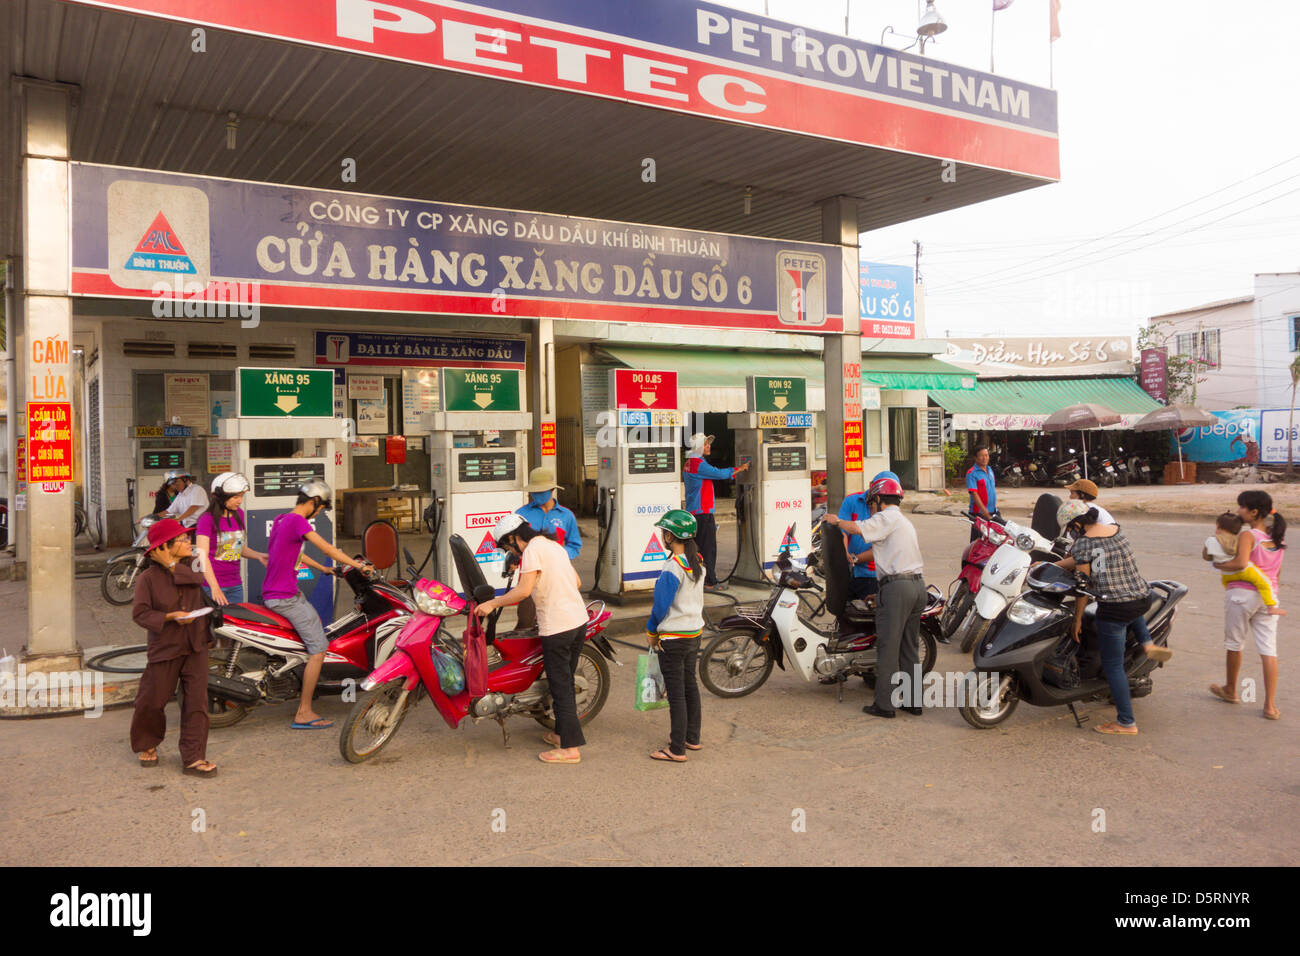 Motor scooters fill up at gas station in town of Phan Thiet Vietnam - Stock Image